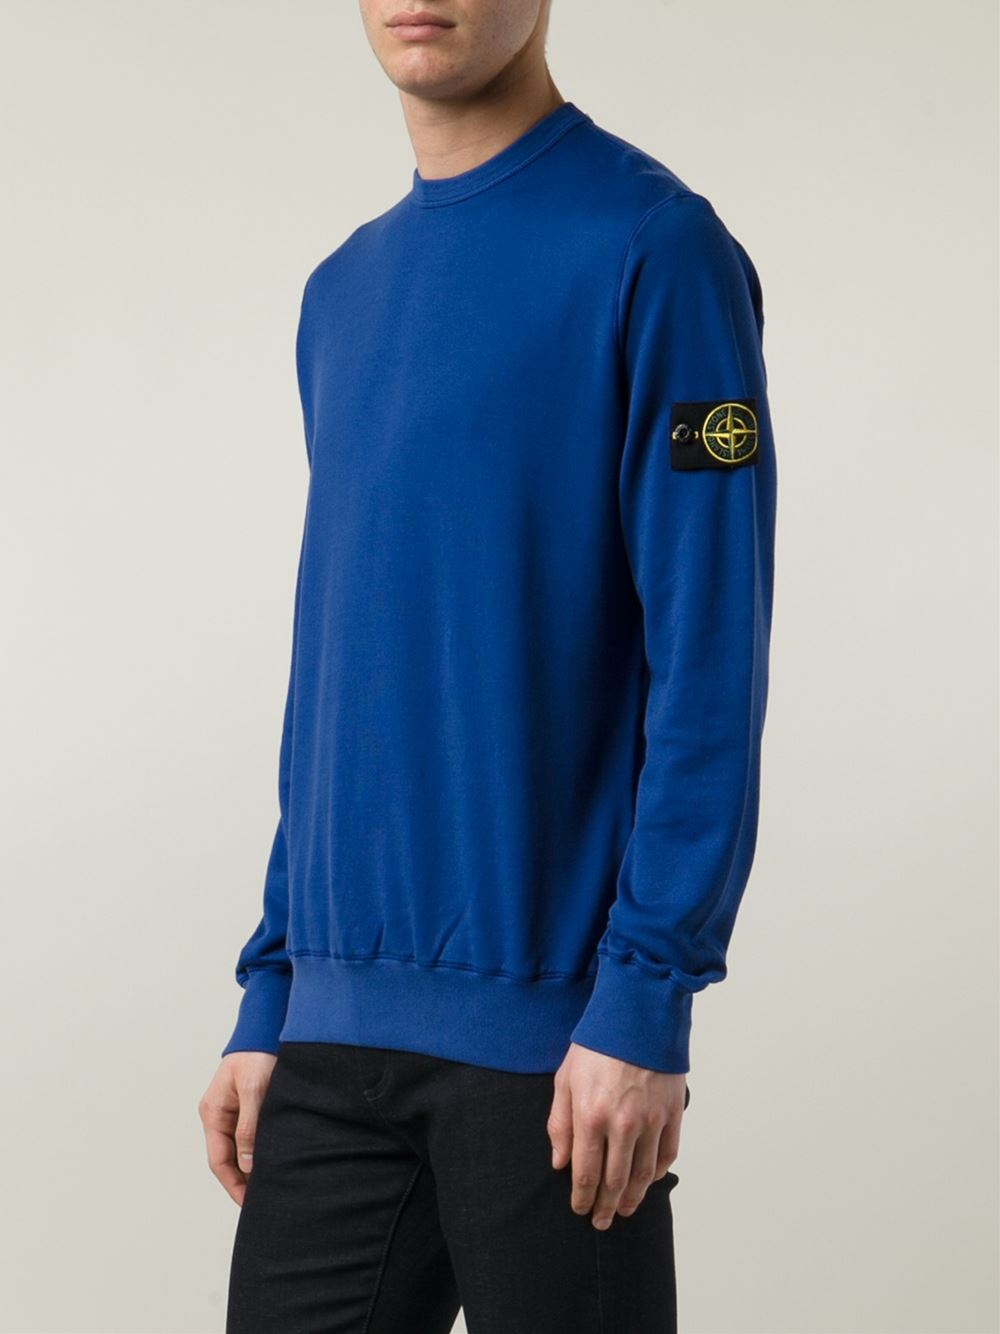 stone island crew neck sweatshirt in blue for men lyst. Black Bedroom Furniture Sets. Home Design Ideas